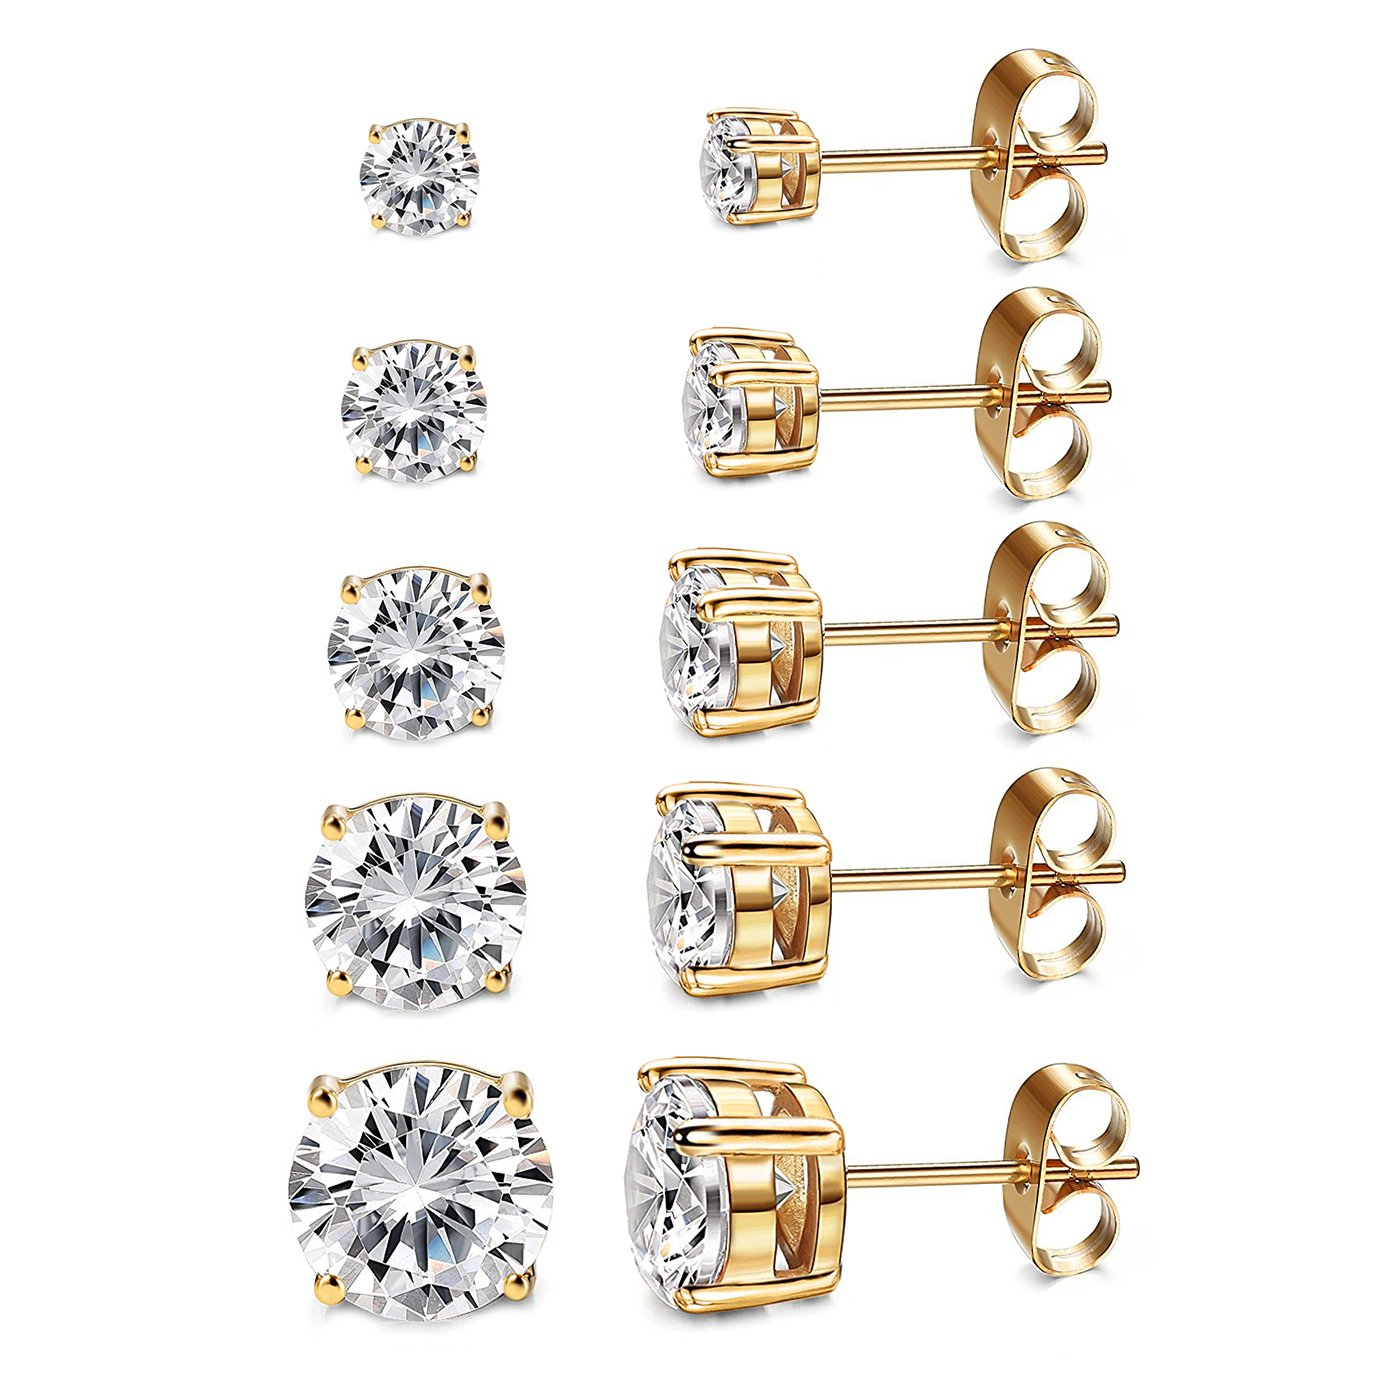 Women's 18K Gold Plated CZ Stud Earrings Simulated Diamond Round Cubic Zirconia Ear Stud Set(5 Pairs) by Kainier